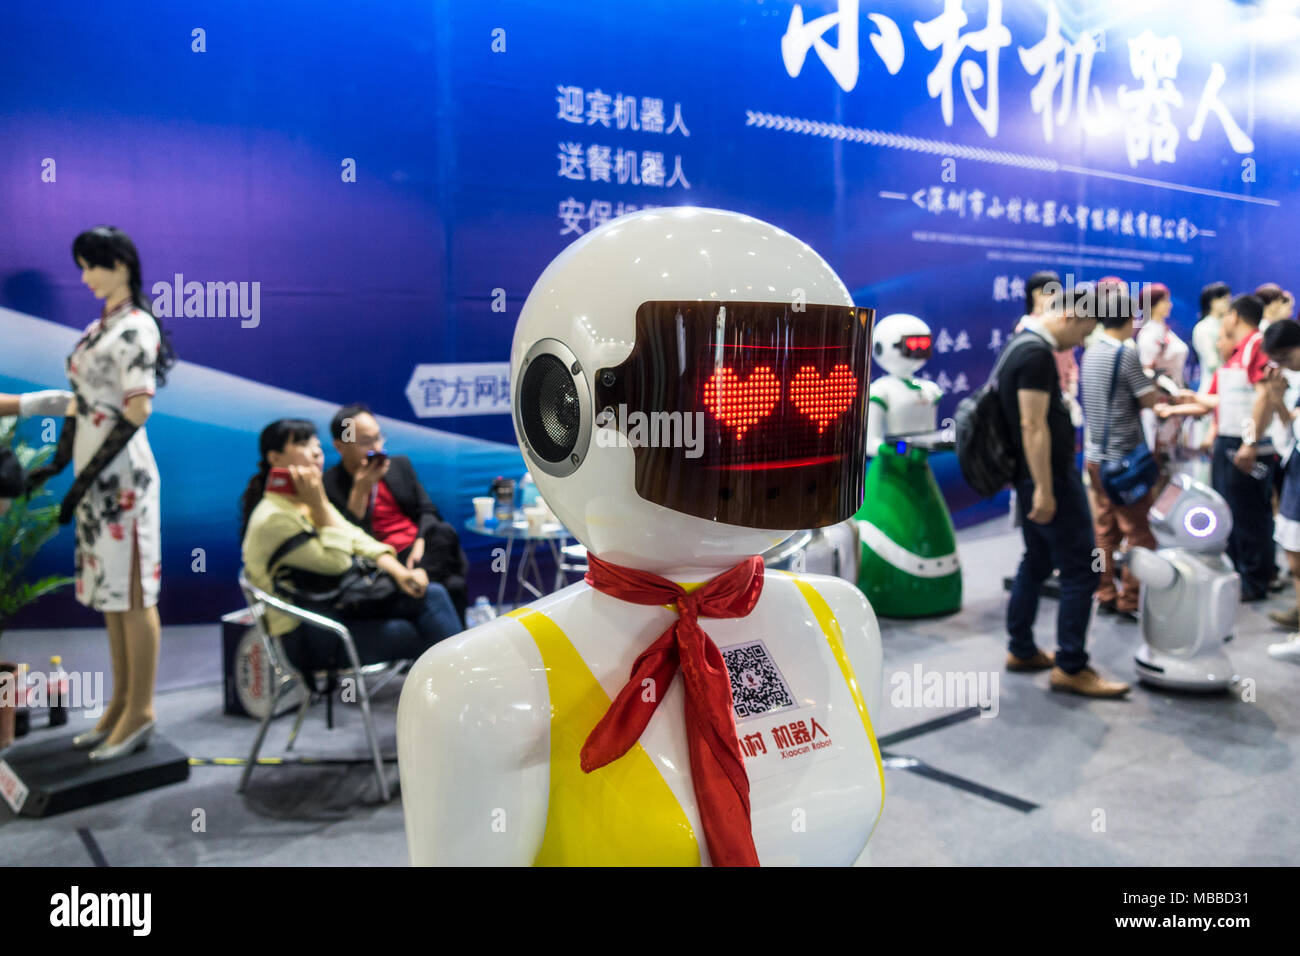 Human-like robot (humanoid robot) with heart eyes at technology fair in Shenzhen, China. - Stock Image